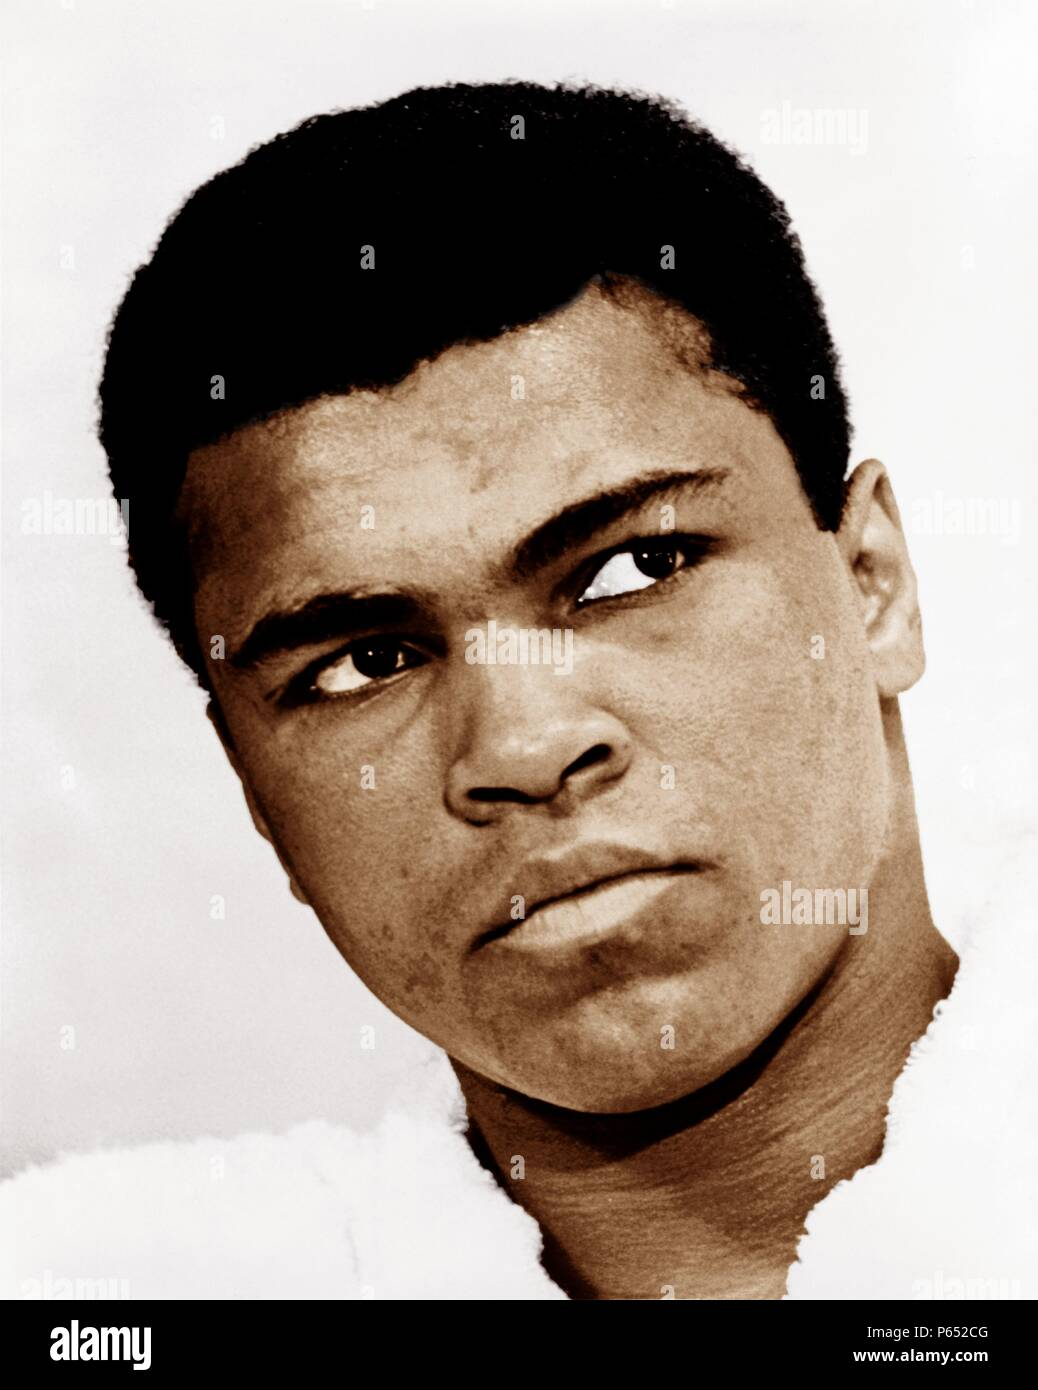 Muhammad Ali (born Cassius Clay, Jr.; January 17, 1942) American former professional boxer, considered among the greatest heavyweights in the sport's history. Stock Photo